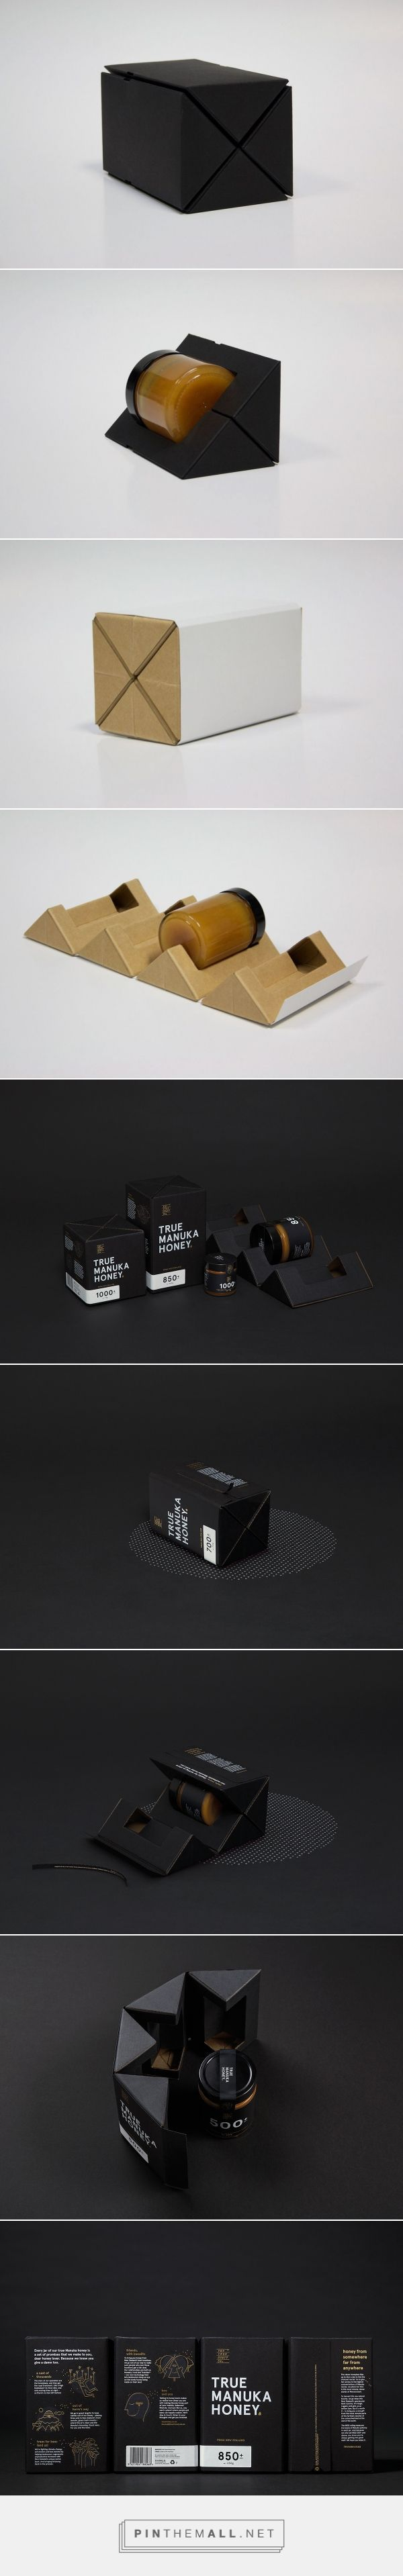 Upscale packaging for The True Honey Co. by Matt Bogust